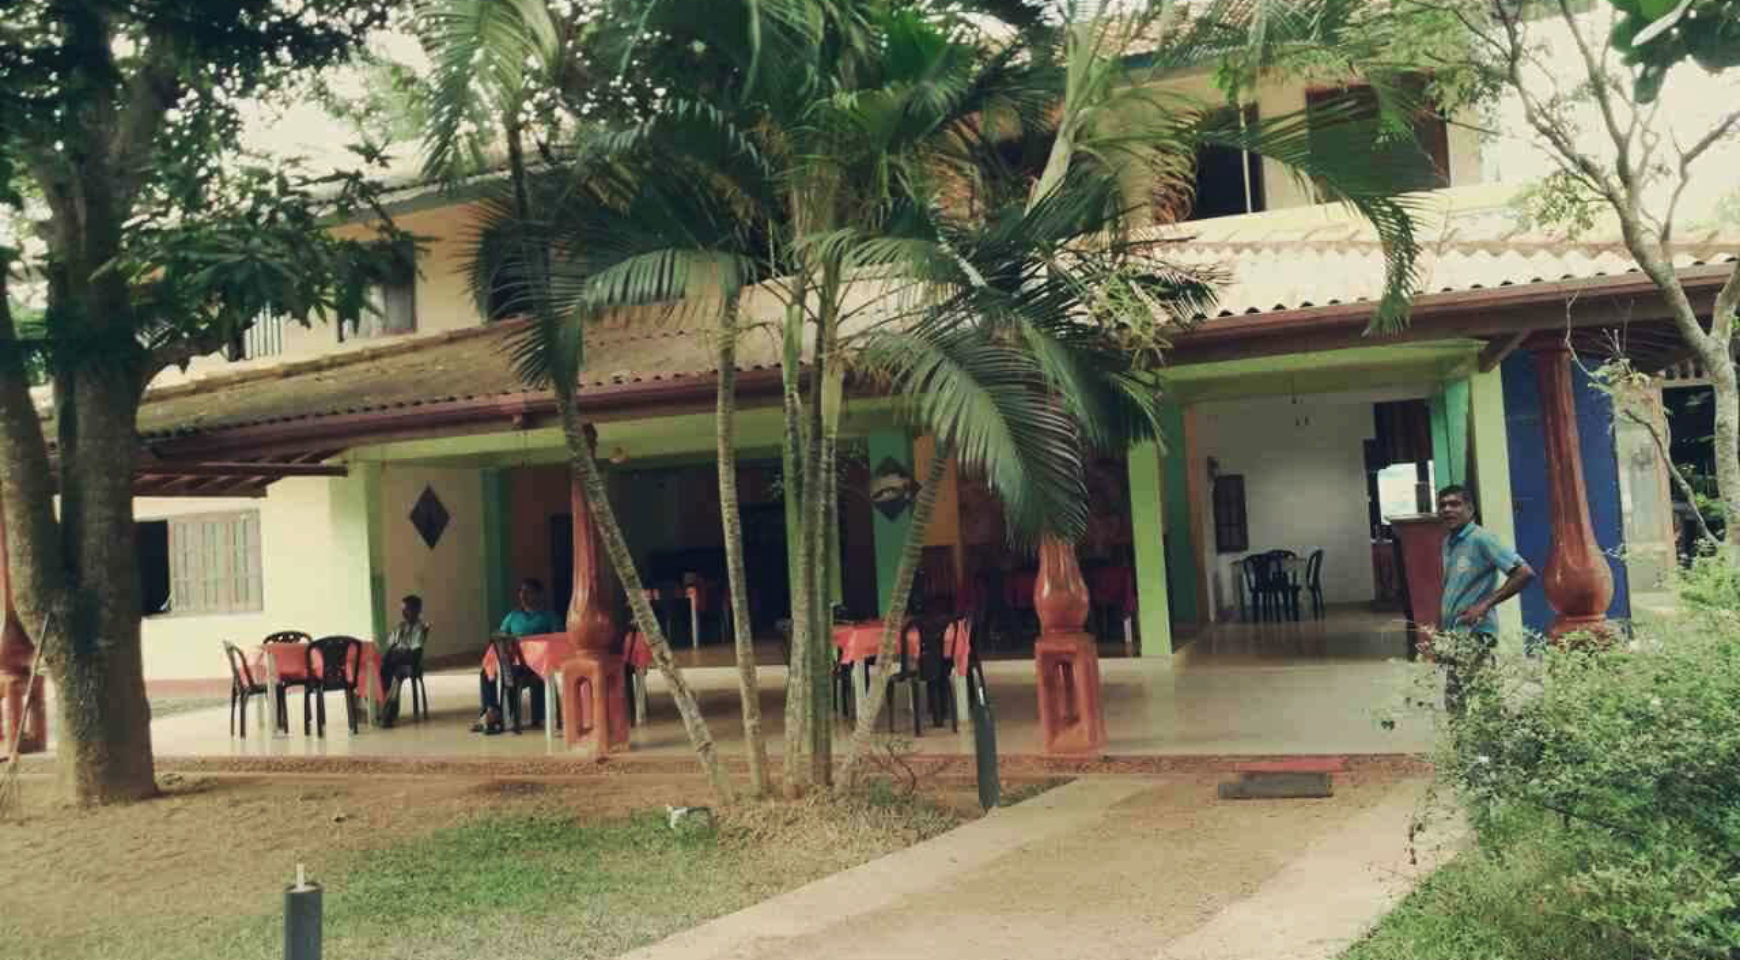 Guest house with restaurant and open bar for sale ceylon for Houses for sale with guest house on property